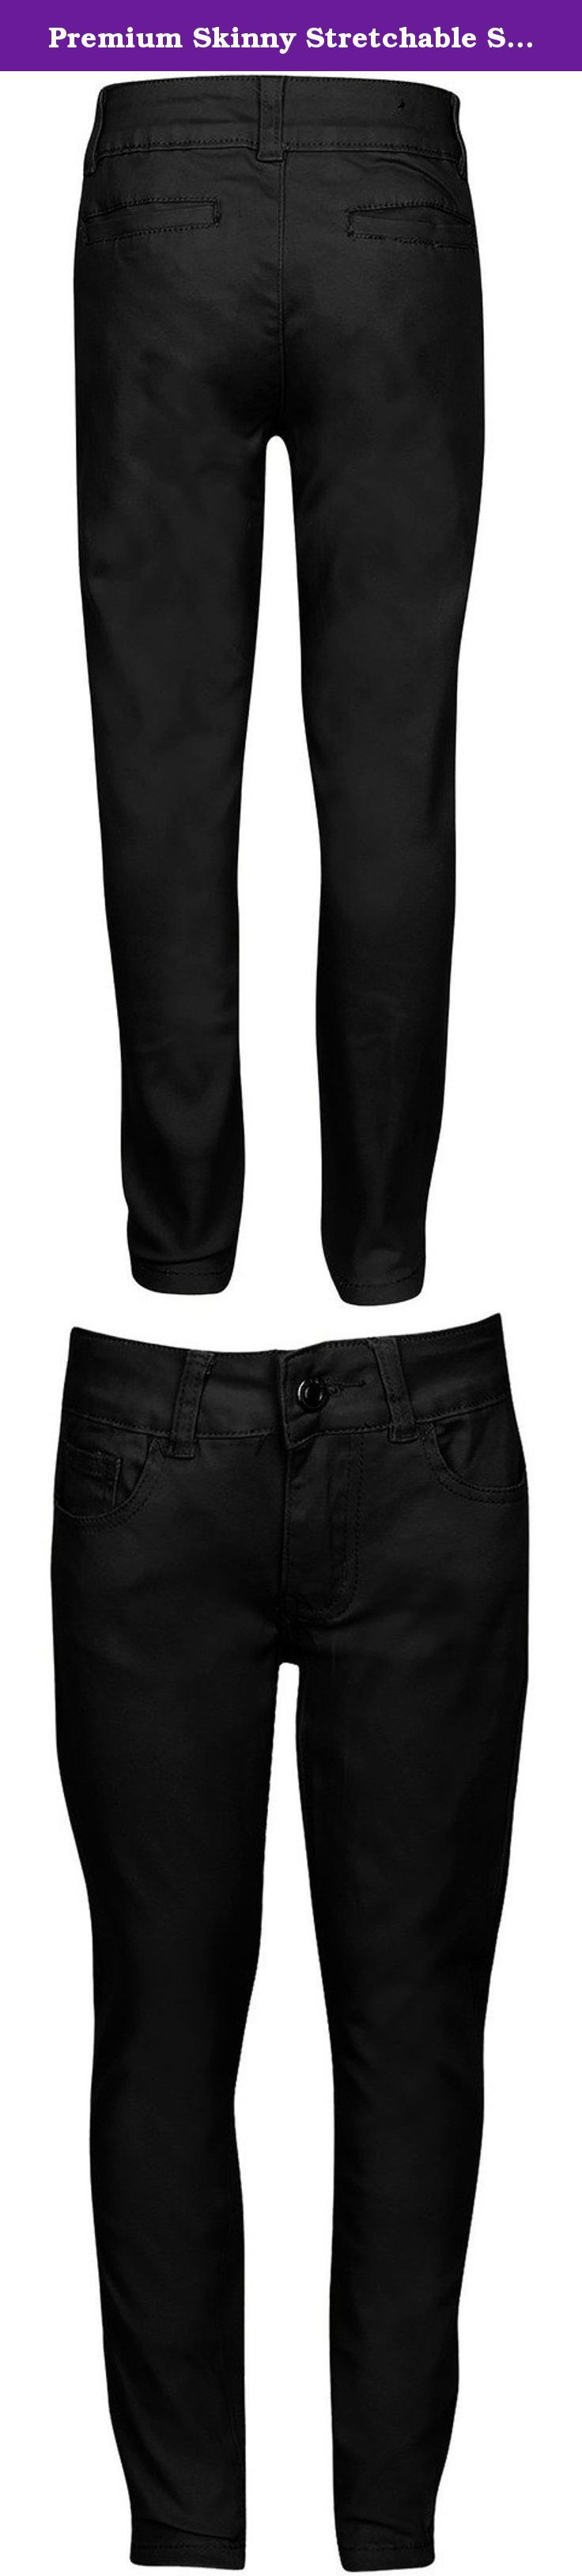 Premium Skinny Stretchable School Uniform Pants for Juniors 1 Black. Have you been finding it difficult to get a skinny pant with stretchable material that looks stylish too? Or Are you looking for a skinny pant that can be comfortably worn for long durations without causing itching, excessive sweating or irritation? Well, we bring to you a skinny pant design that you will love for its many incredible features and benefits: - Stylish skinny fit with straight leg openings - looks trendy…